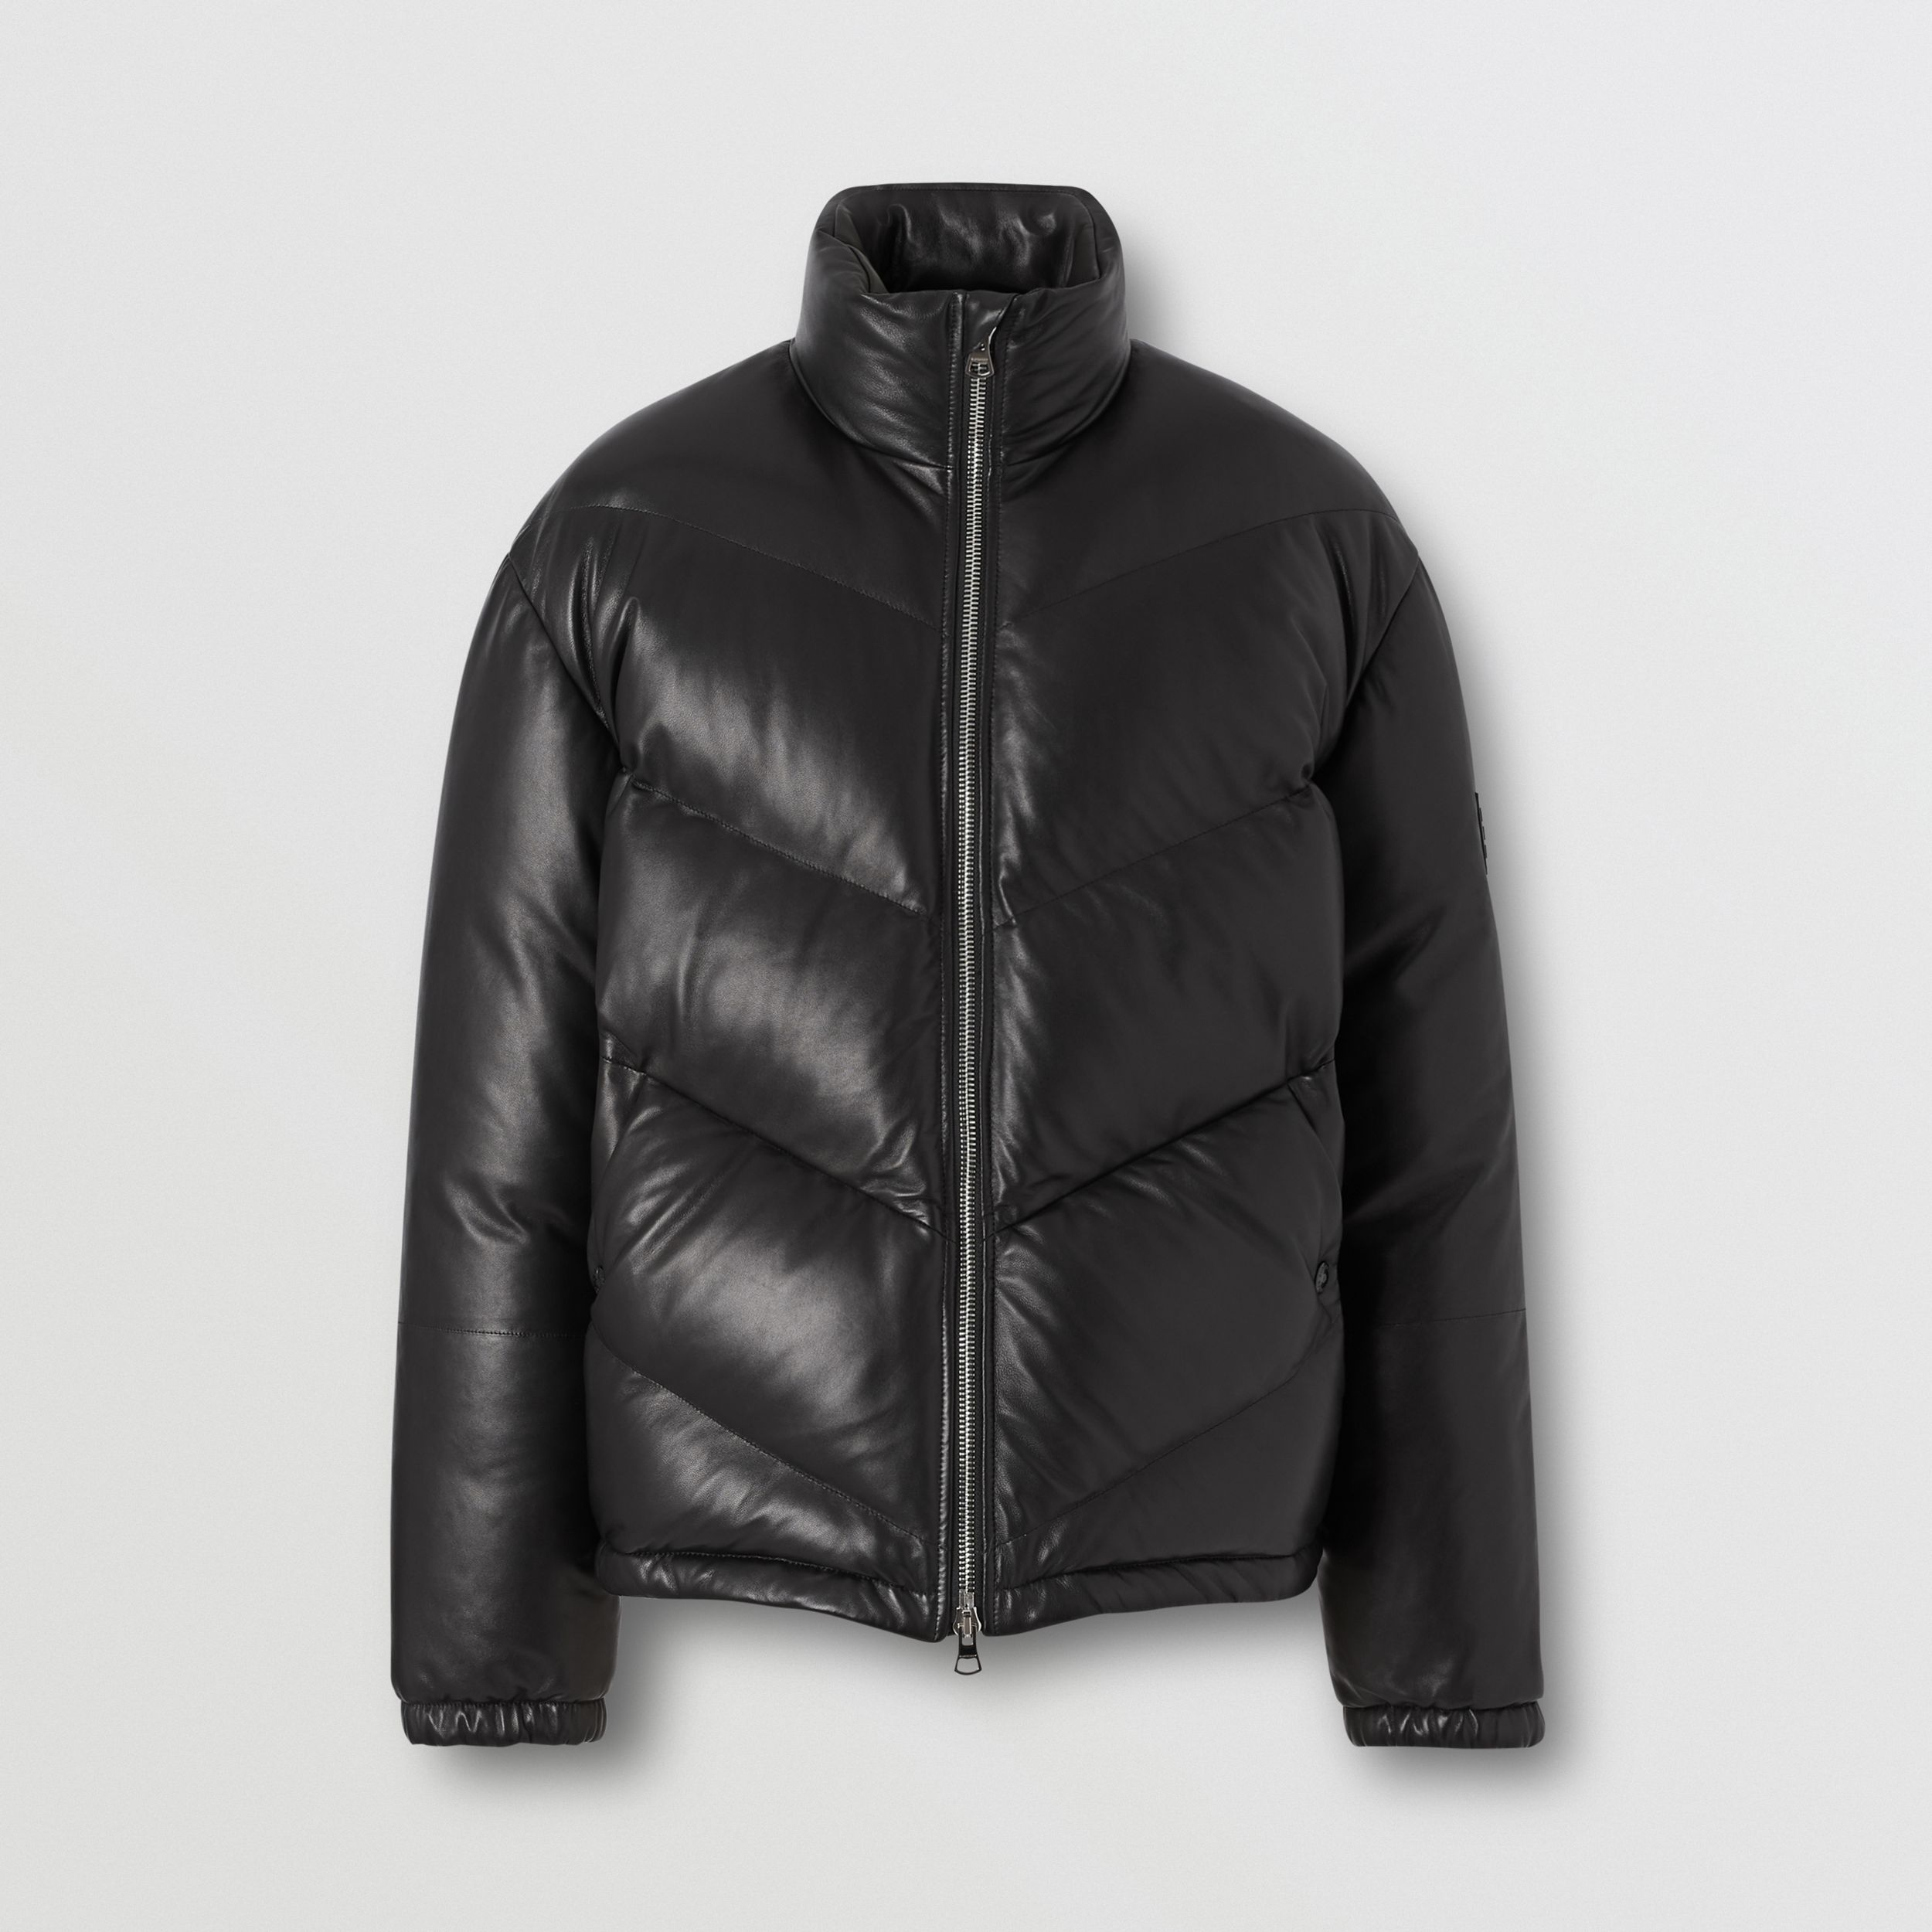 Logo Appliqué Lambskin Puffer Jacket in Black - Men | Burberry - 4